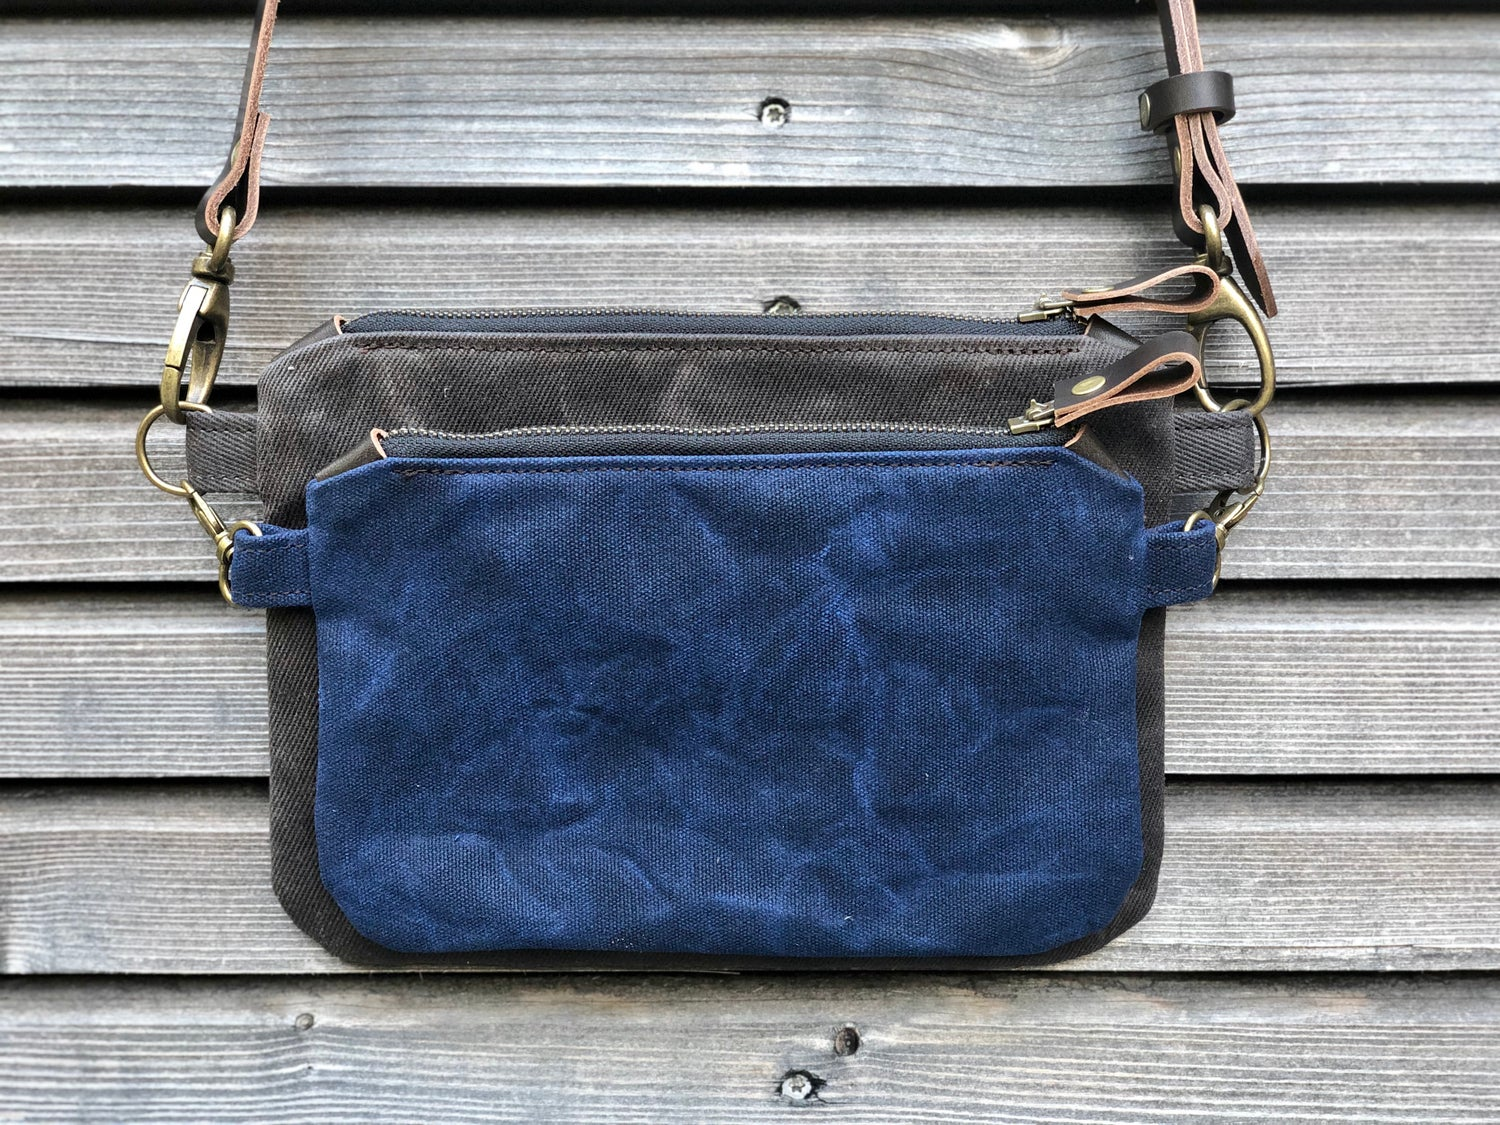 Image of Waxed canvas day bag / small messenger bag/ kangaroo bag with waxed leather shoulder strap